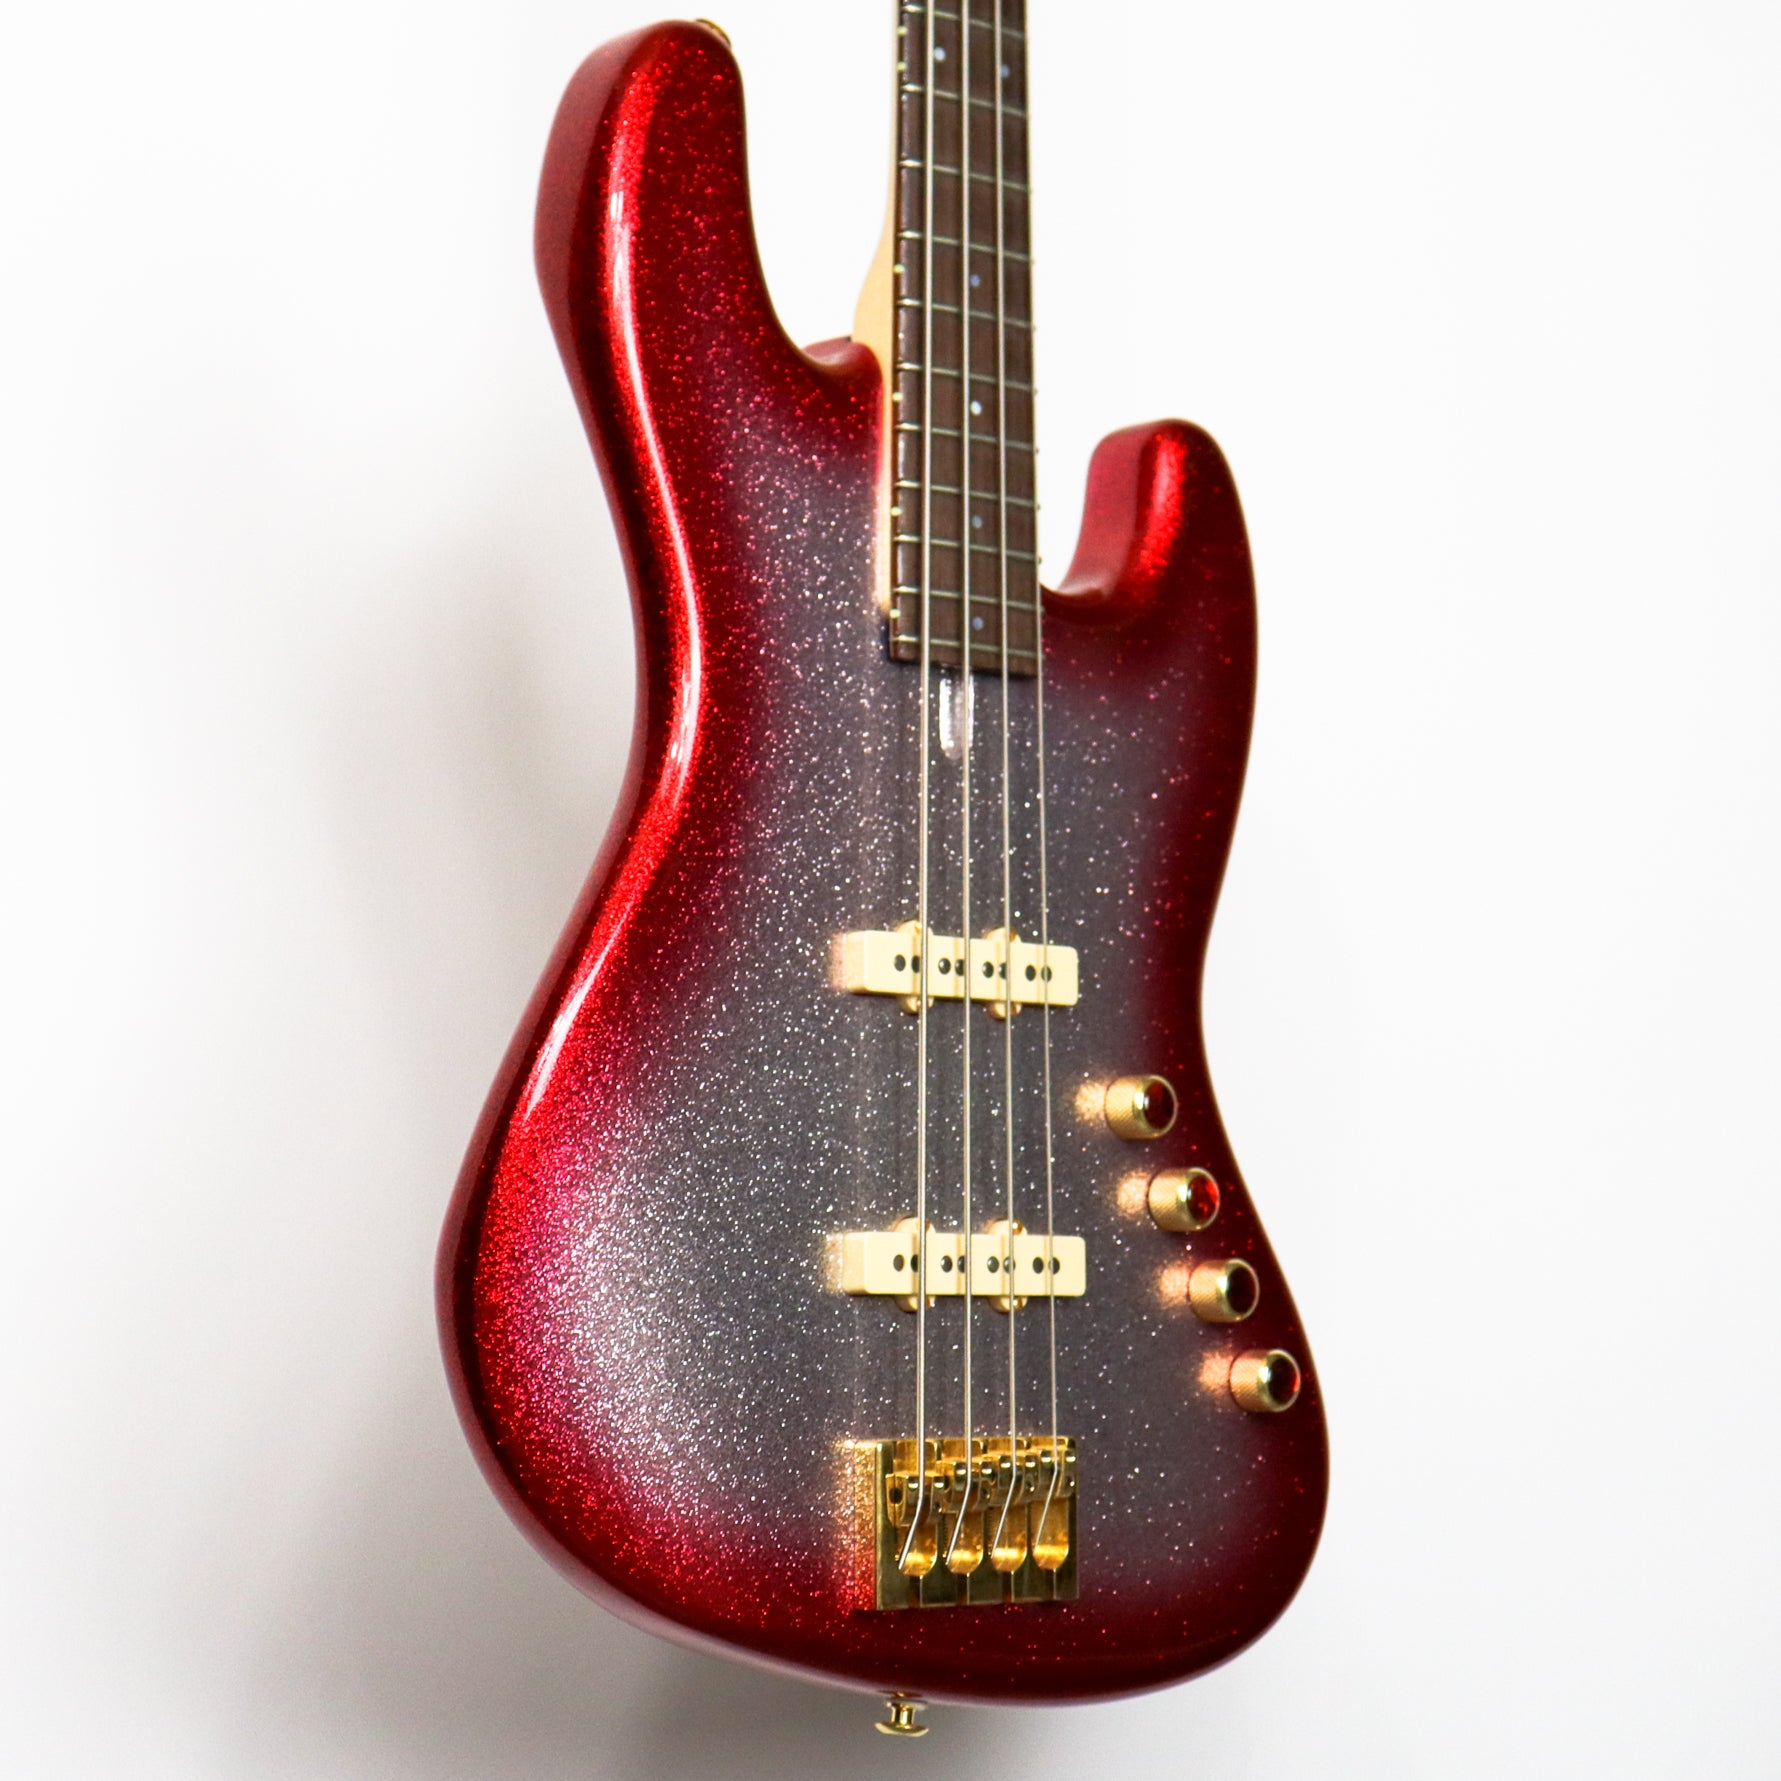 Pensa J Series 4 String Bass, PPG/Silver Flake Red Burst 0779